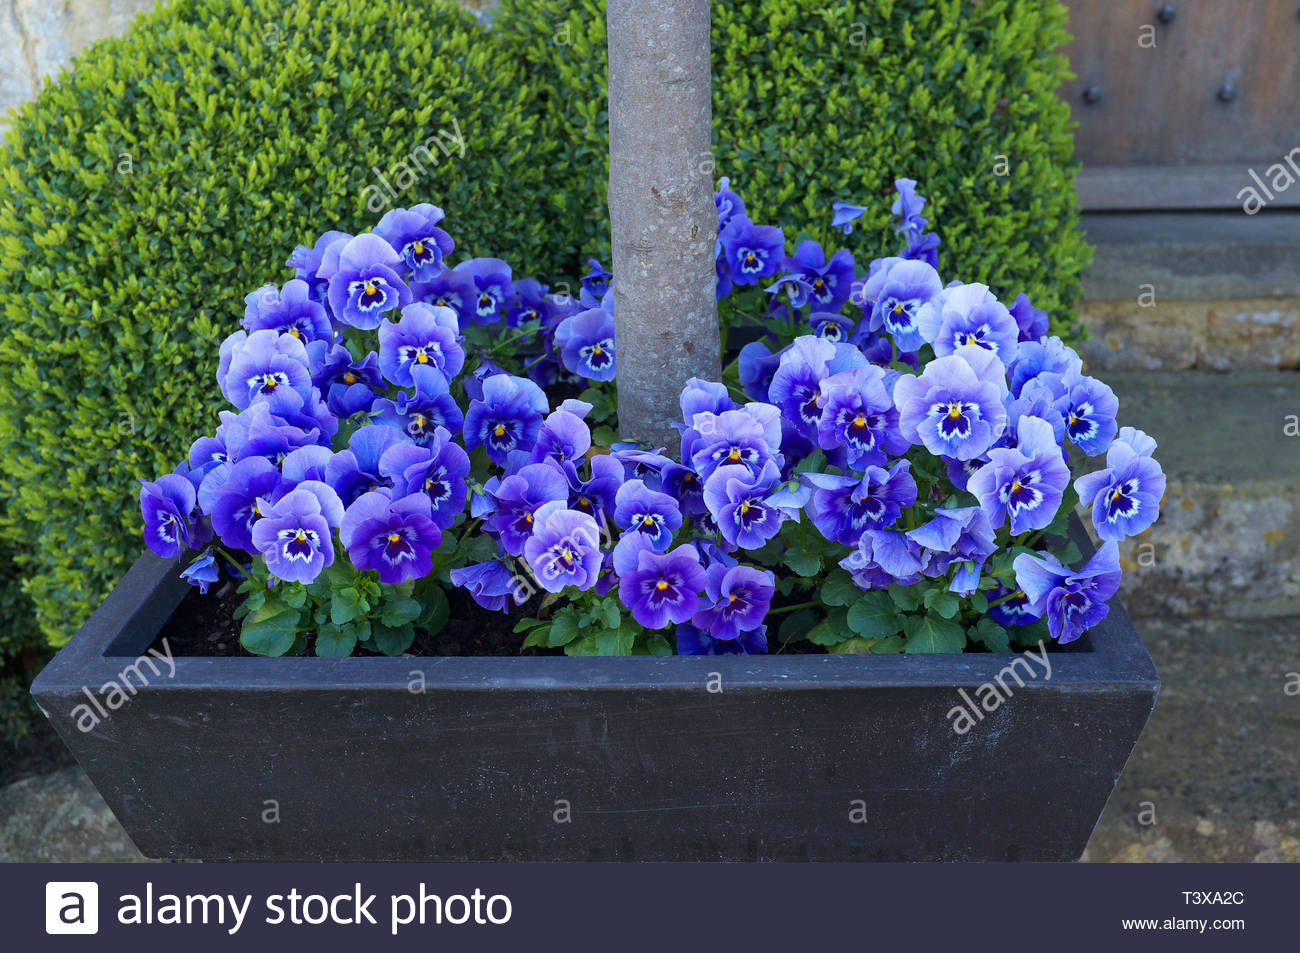 Violet flowers grow in a tree planter, in Broadway, Worcestershire, UK. Stock Photo